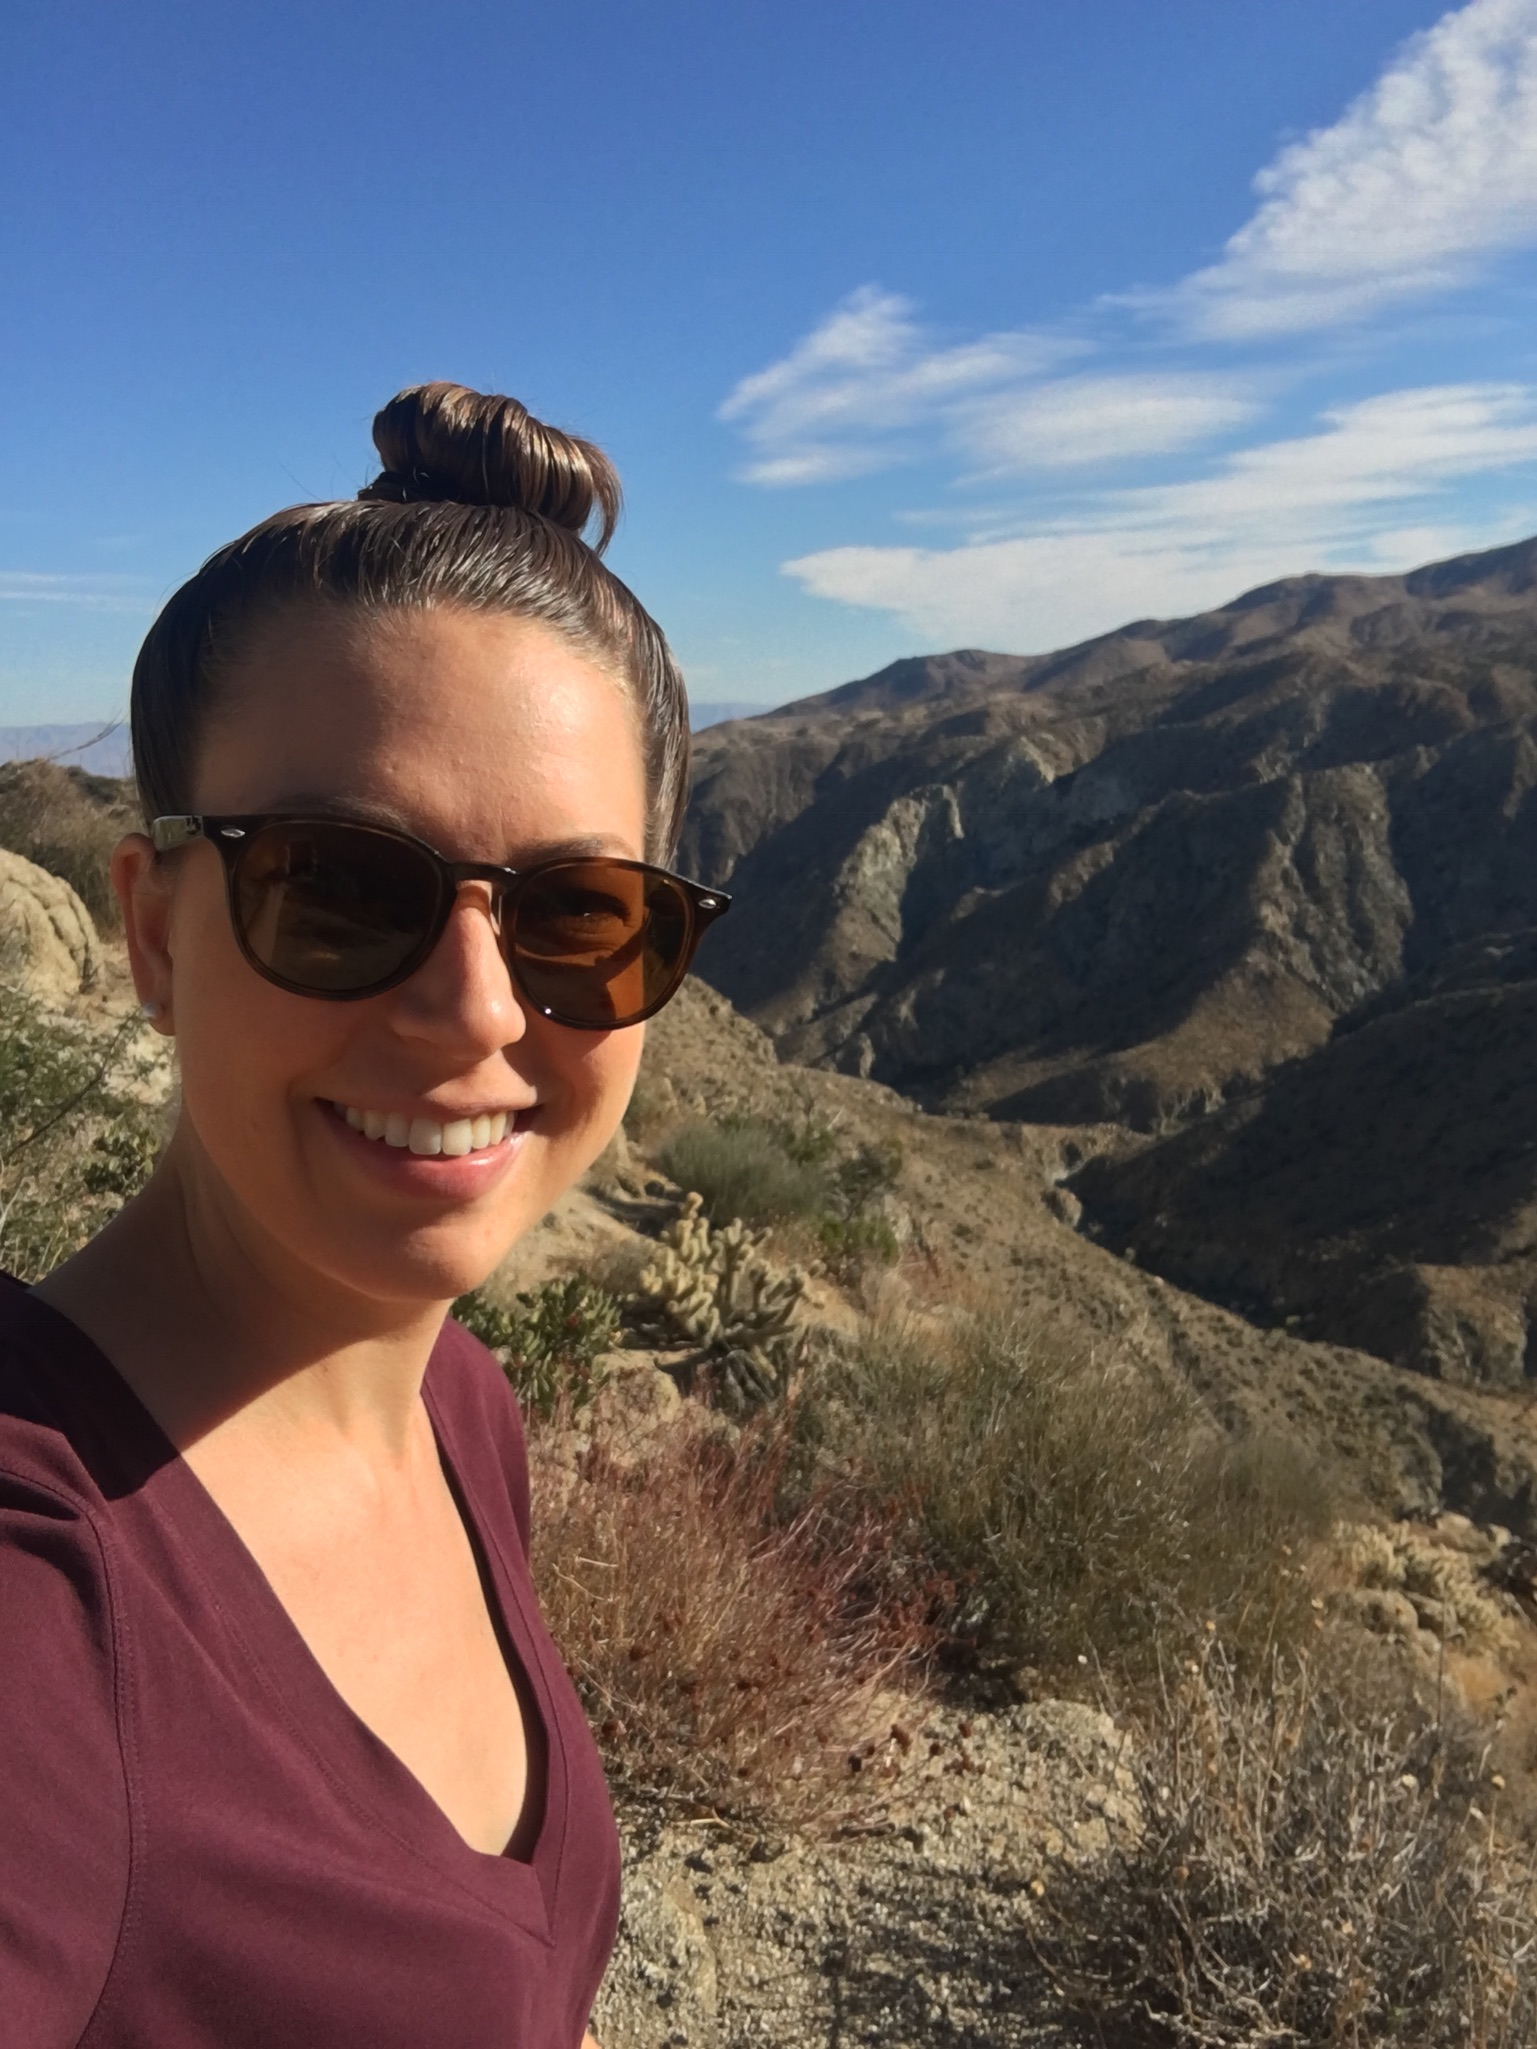 We stopped at an overlook and took a quick hike to stretch our legs. The views were incredible!